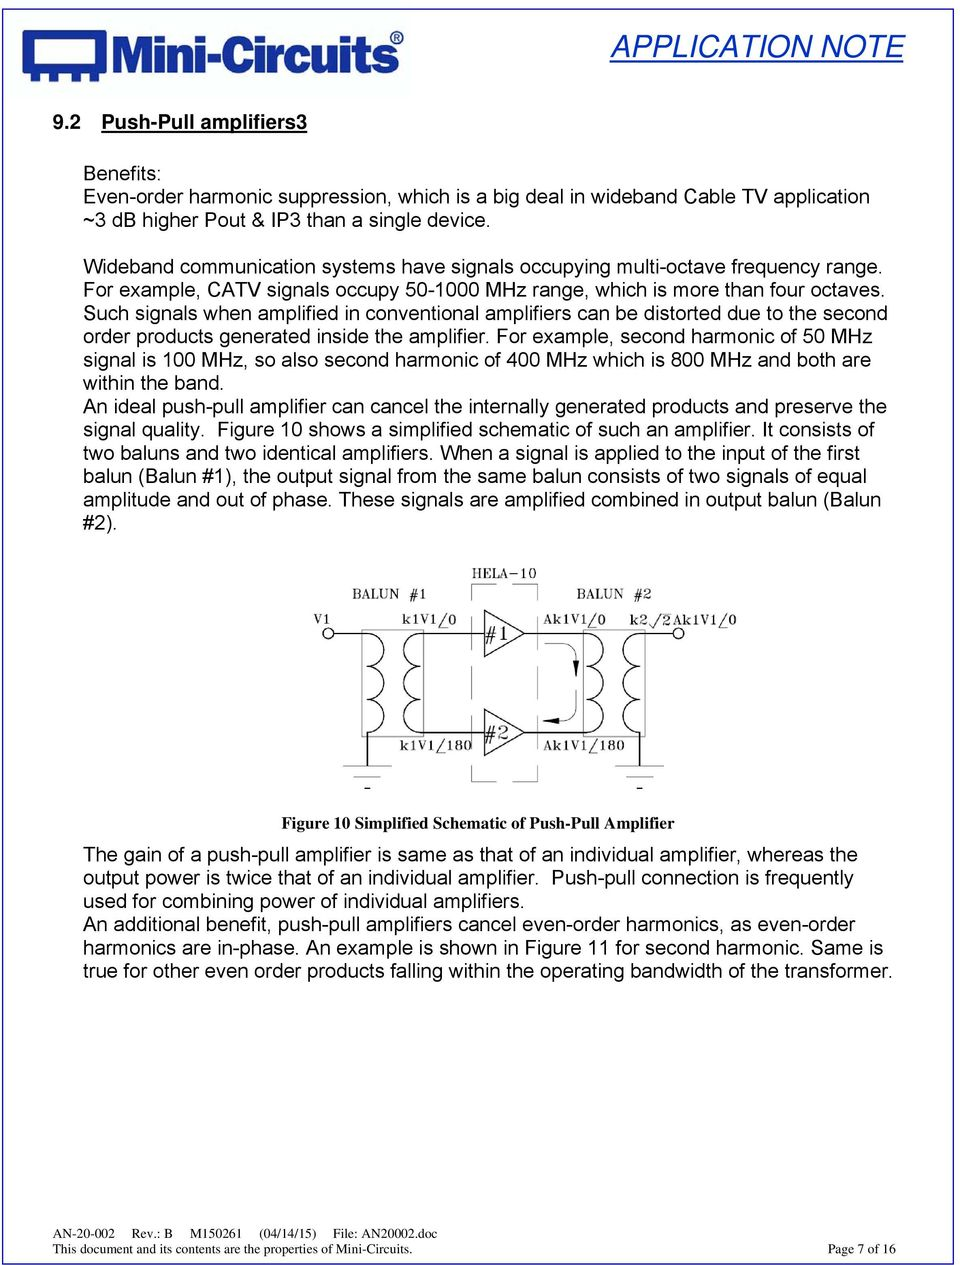 Application Note On Transformers An Pdf Mini Circuit Amplifiers Such Signals When Amplified In Conventional Can Be Distorted Due To The Second Order Products